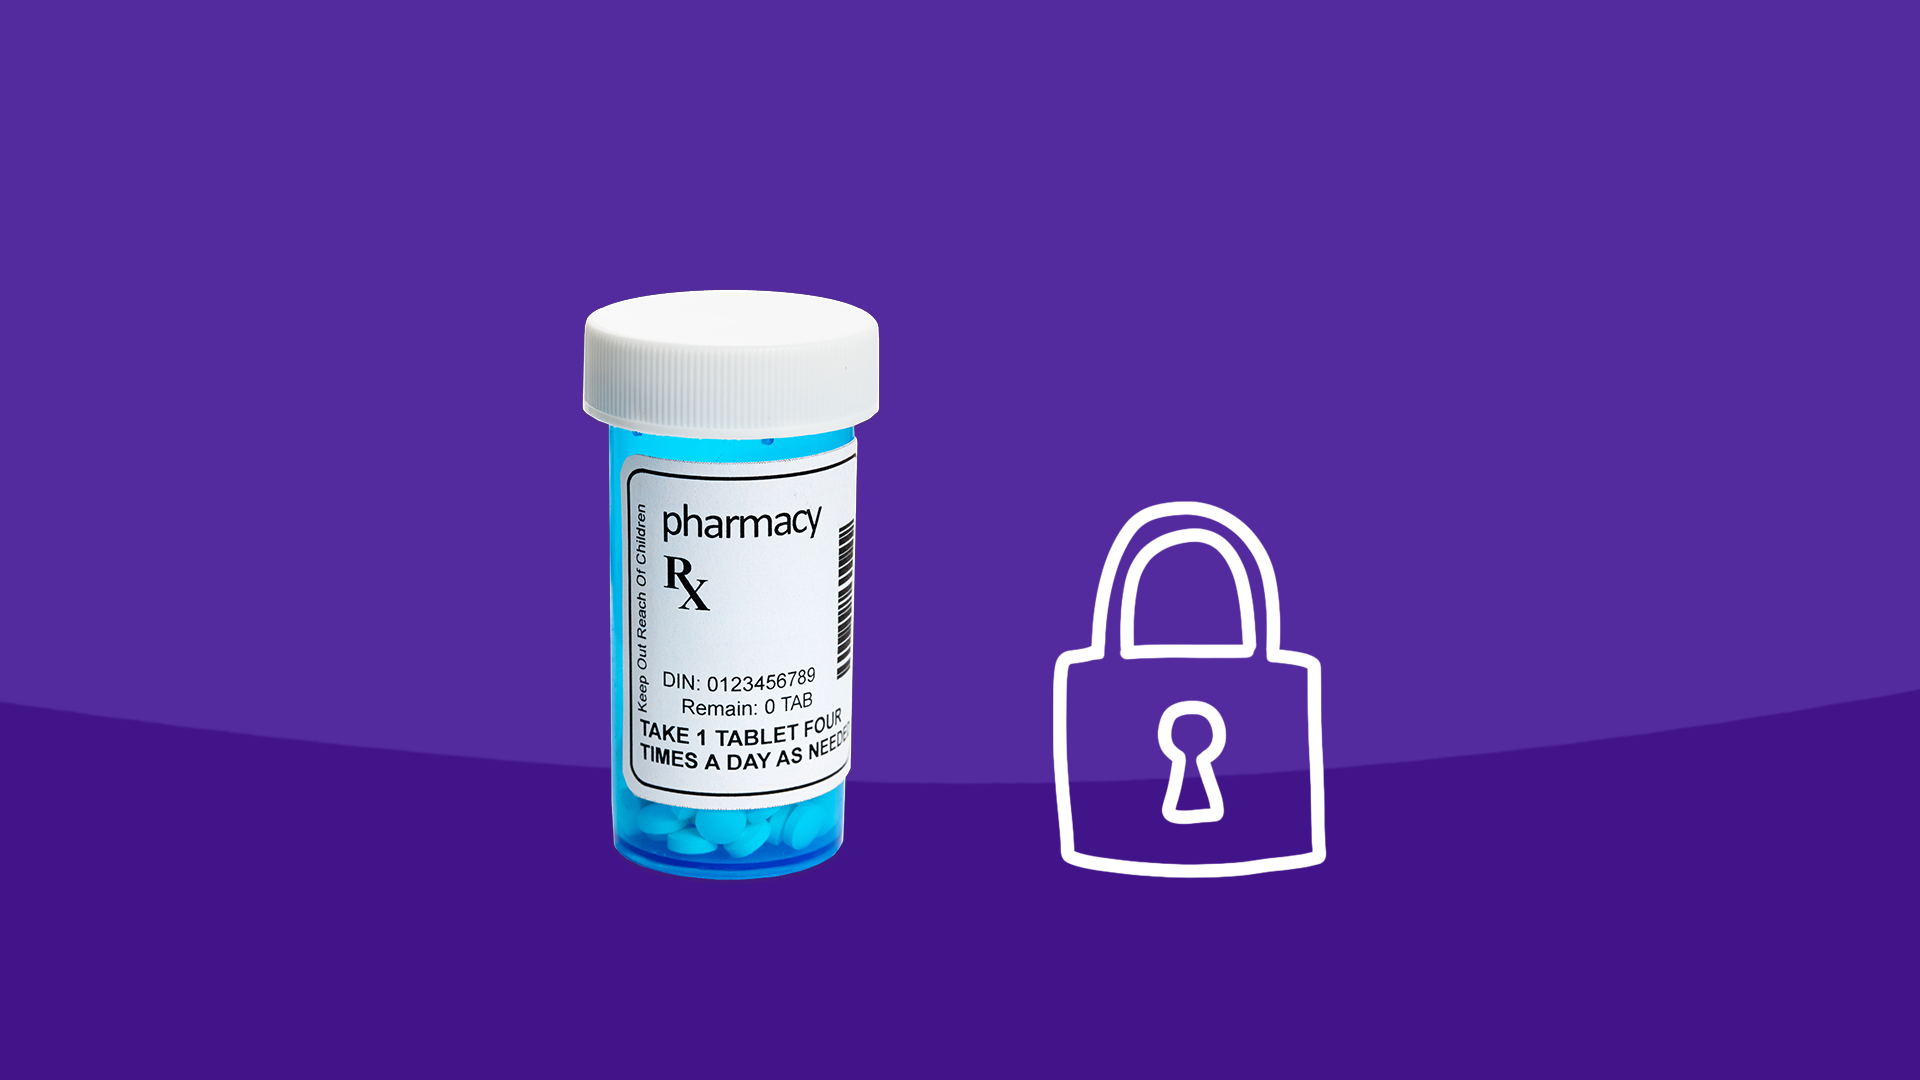 Practice safe medication storage with children at home